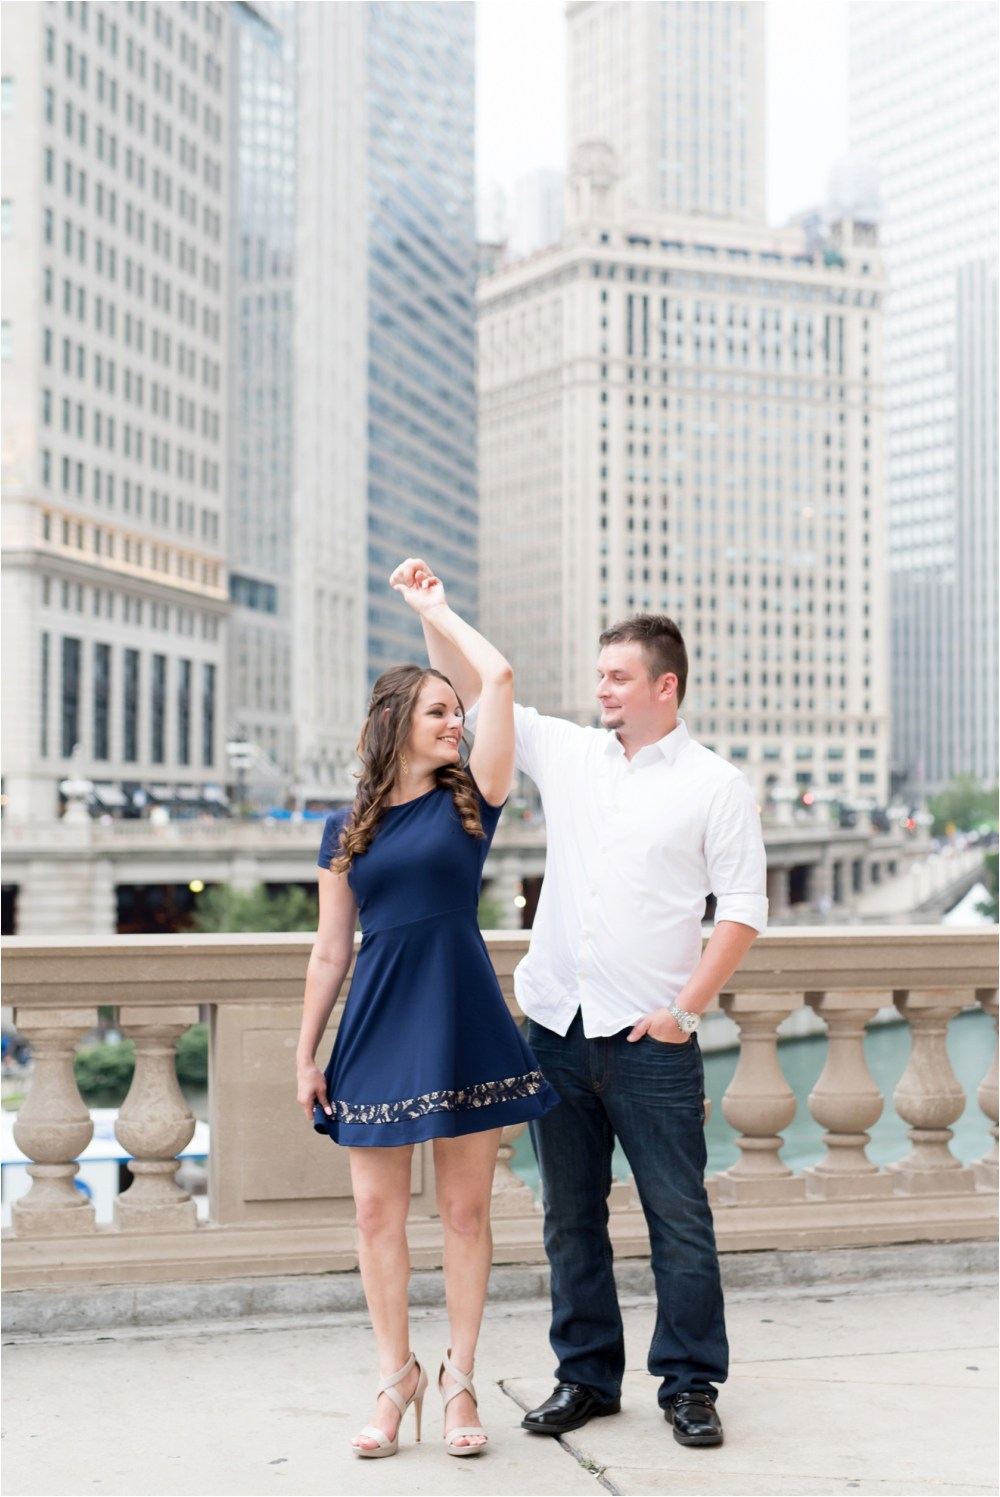 chicago-ilinois-michigna-ave-city-downtown-engagement-photo-18.jpg